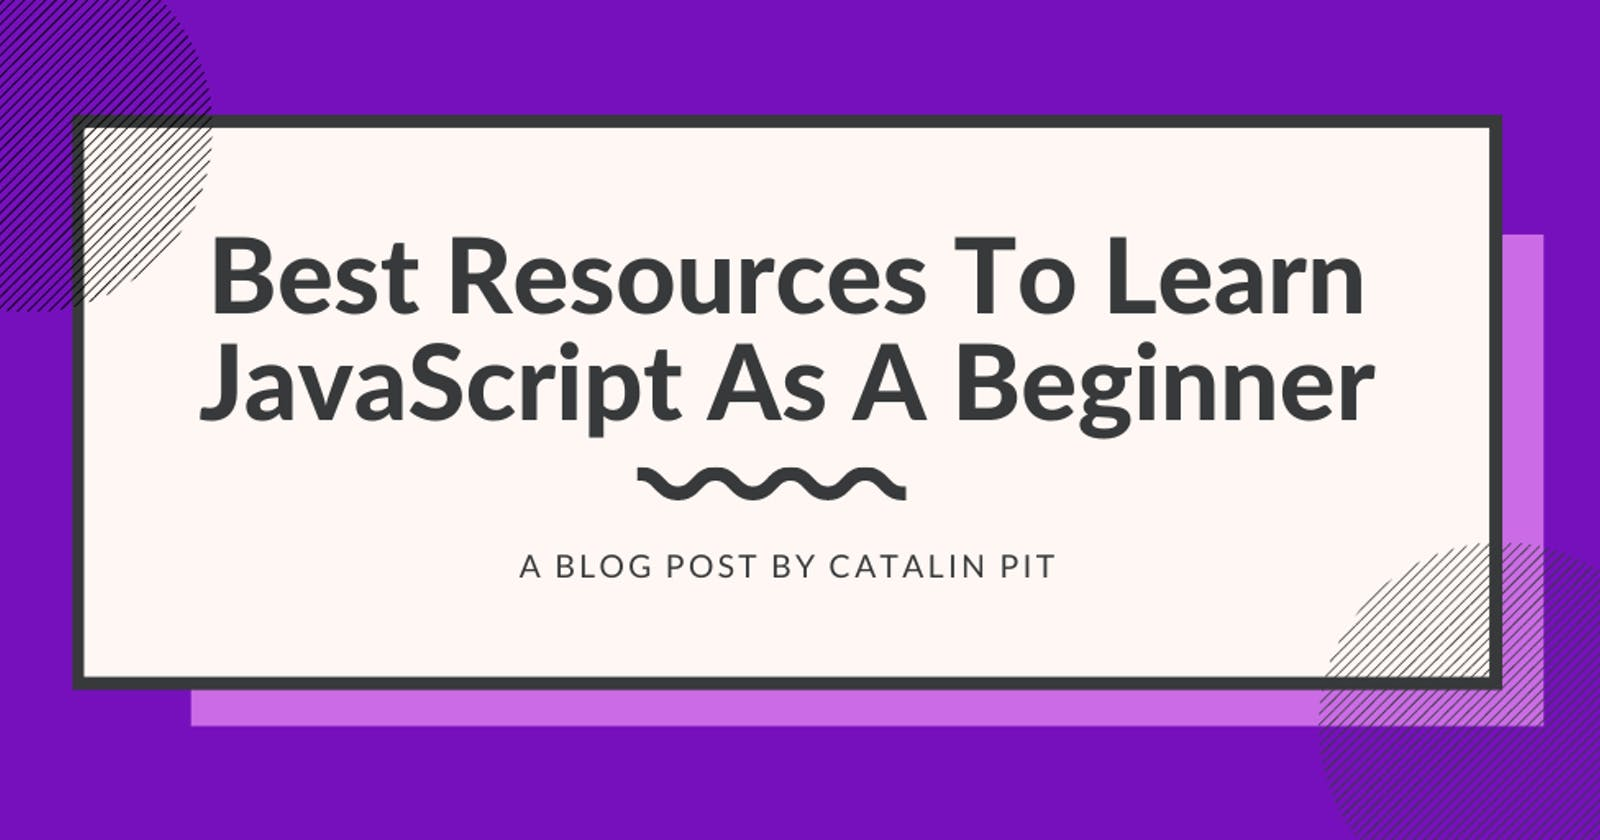 5 Best Resources To Learn JavaScript As A Beginner